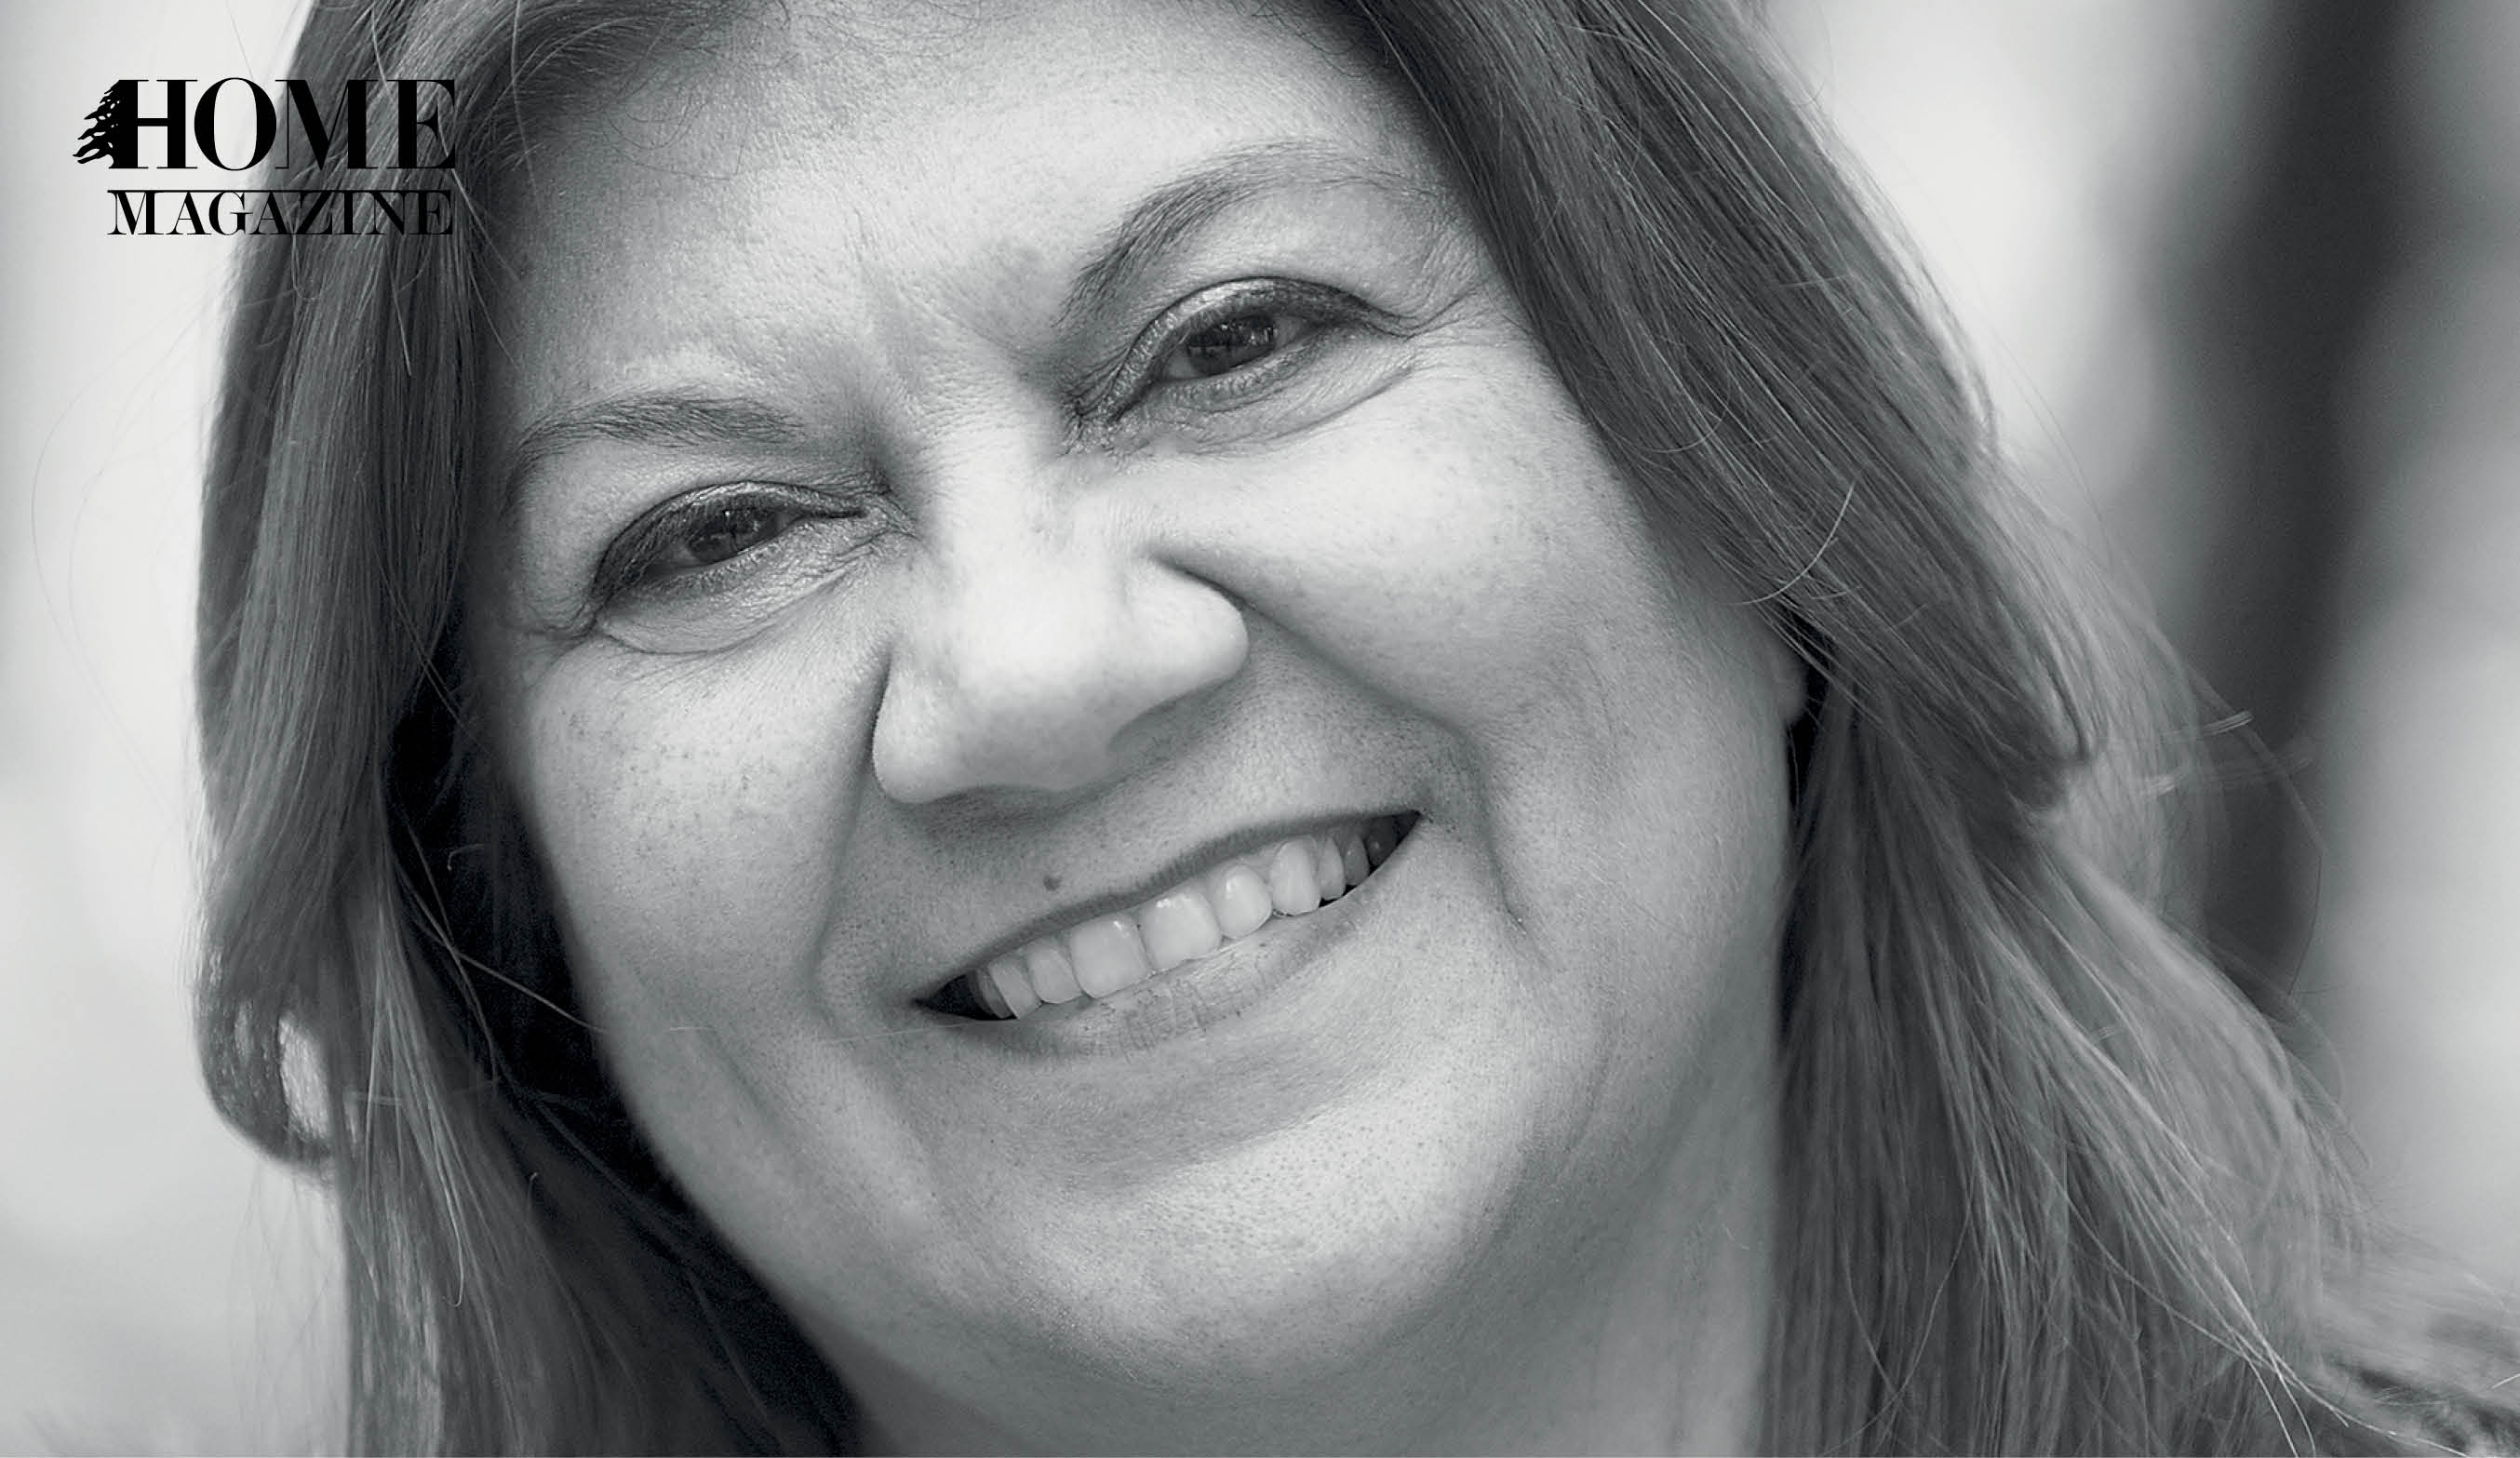 Smiling woman with straight hair